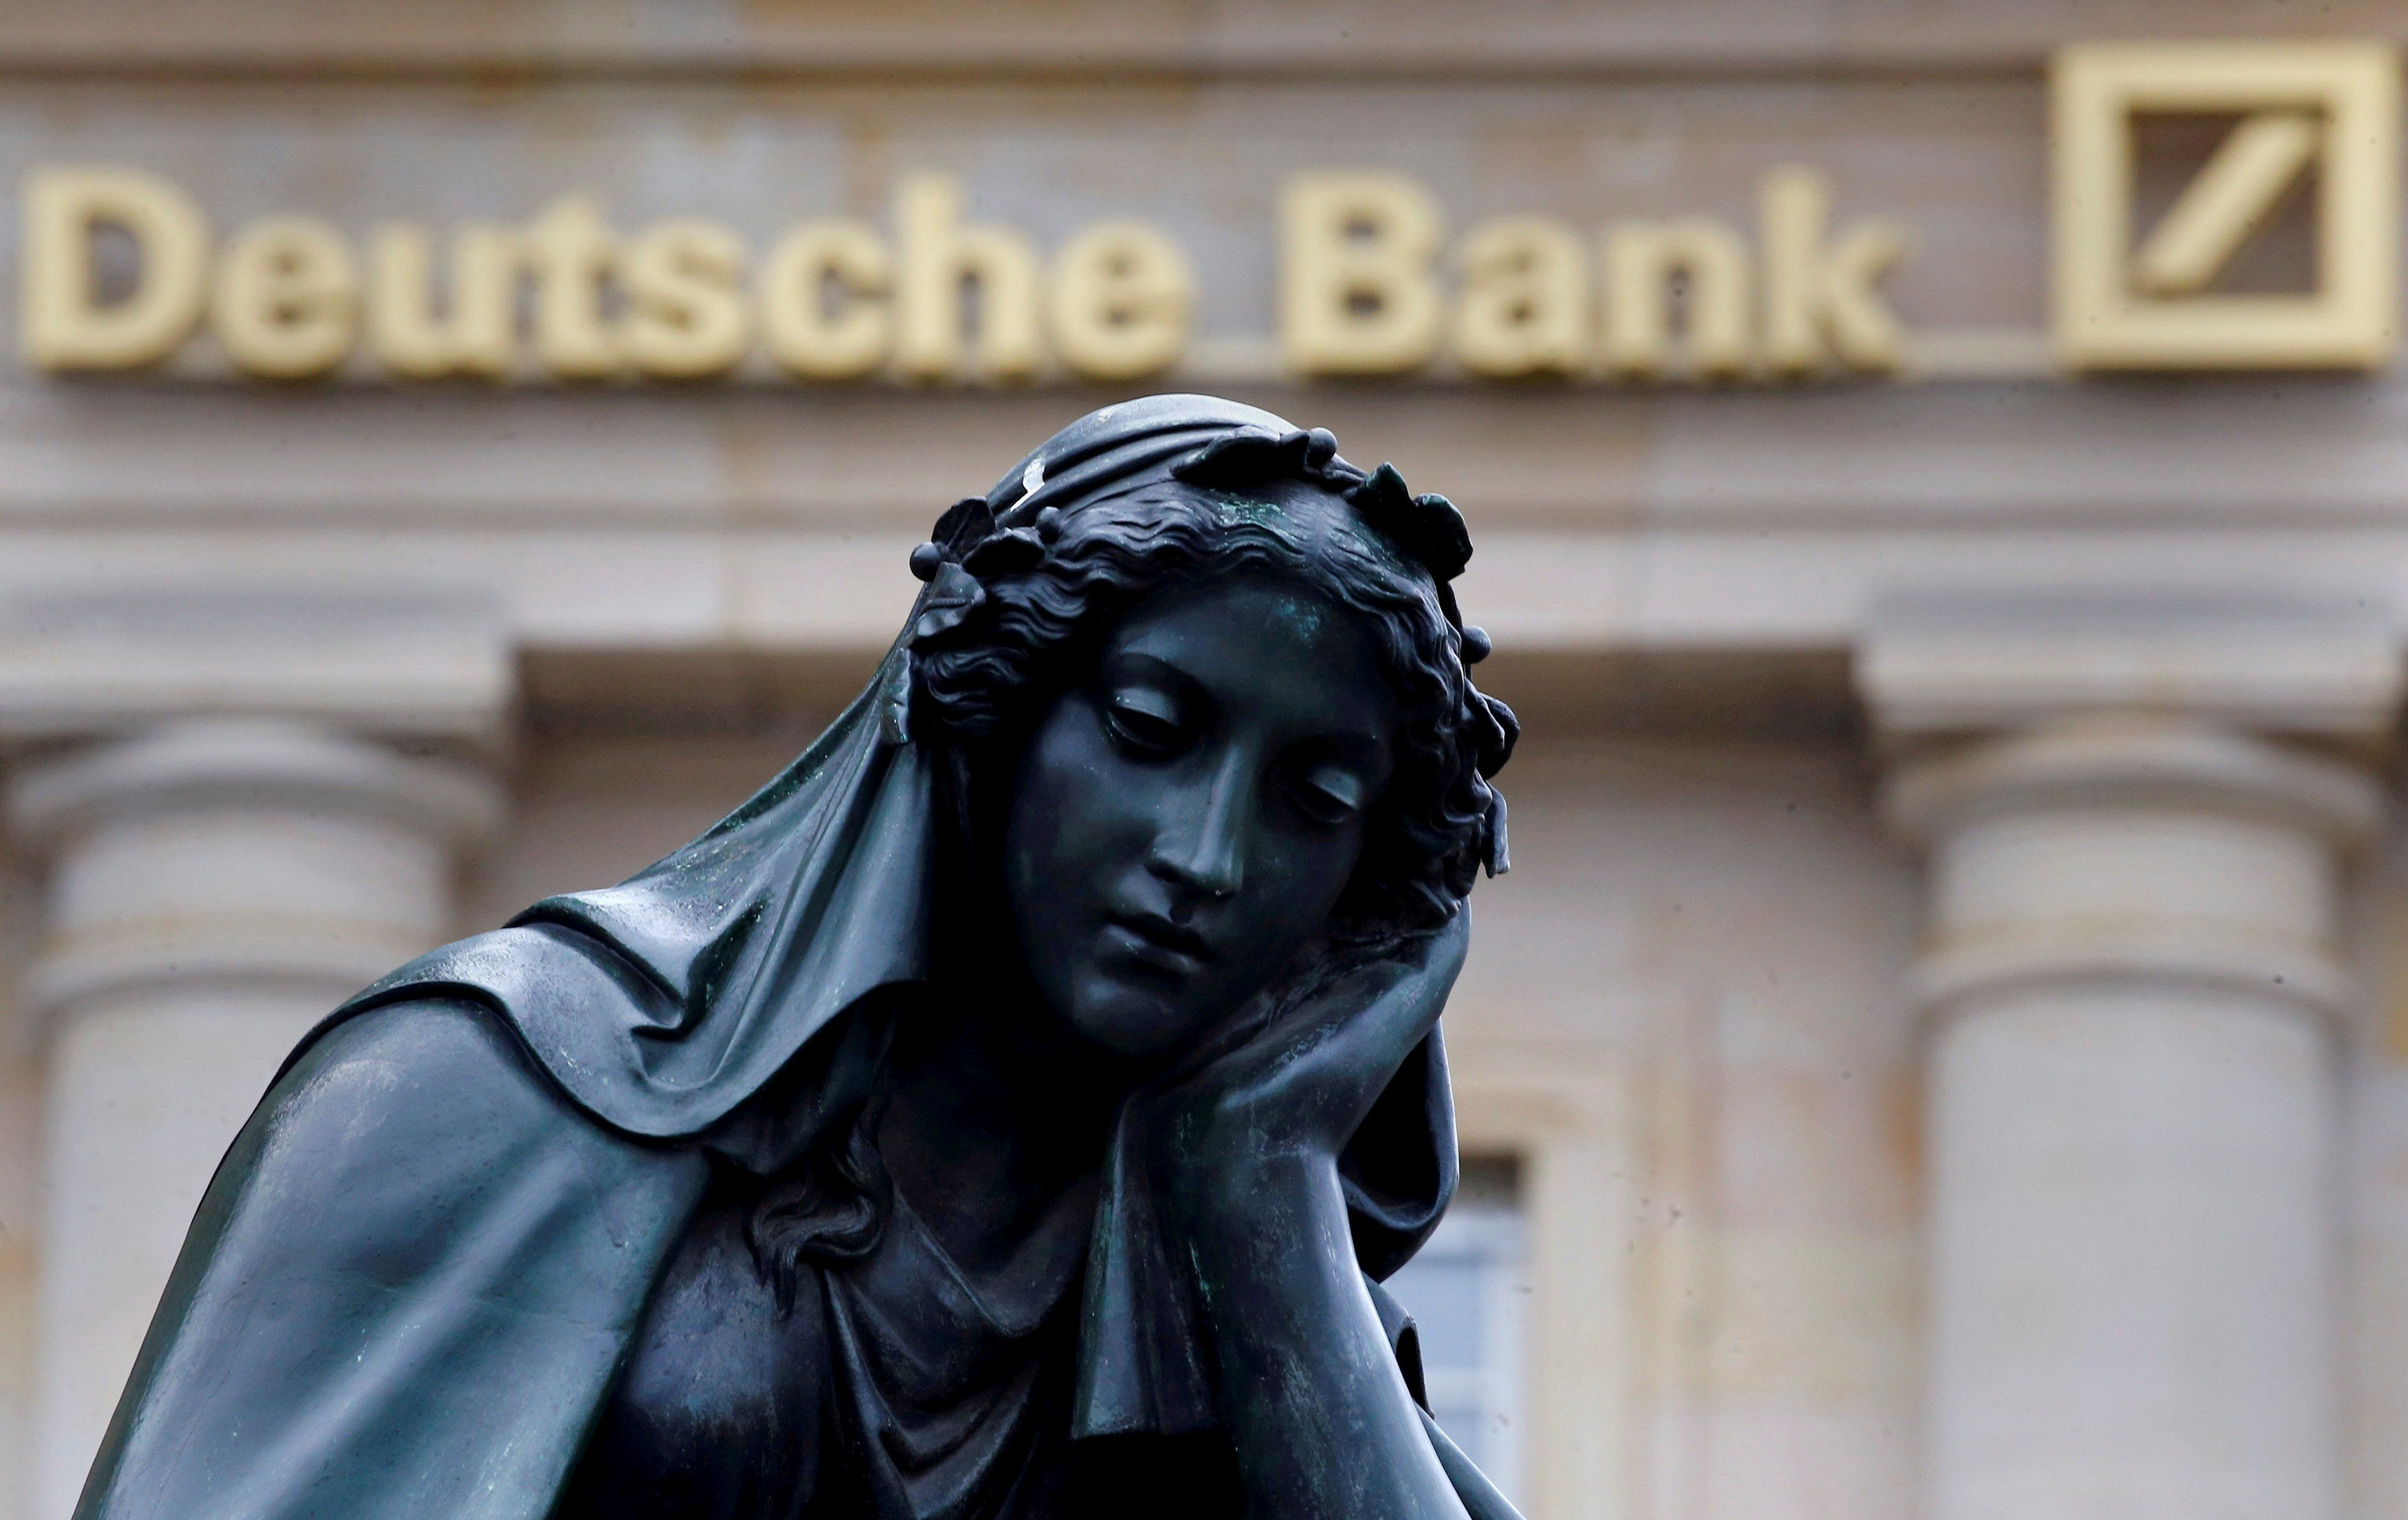 Deutsche Bank eyes huge multi-billion euro restructuring drive